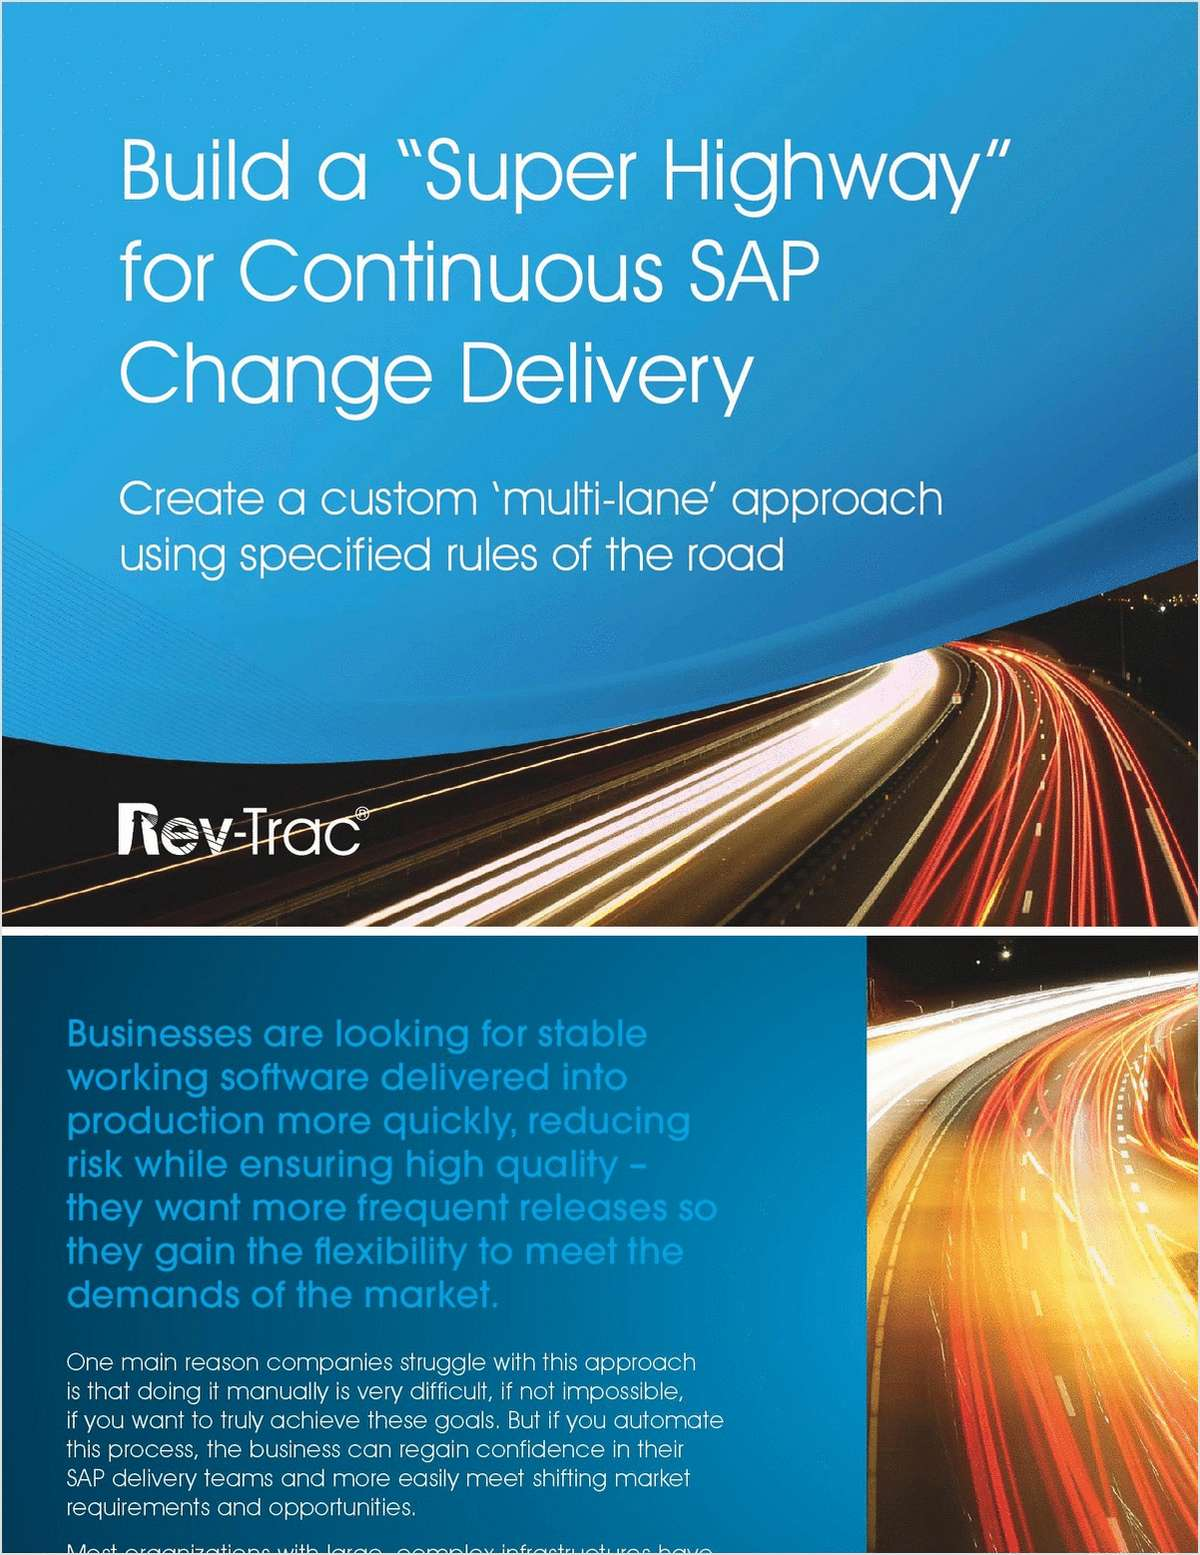 Build a 'Super Highway' for Continuous SAP Change Delivery